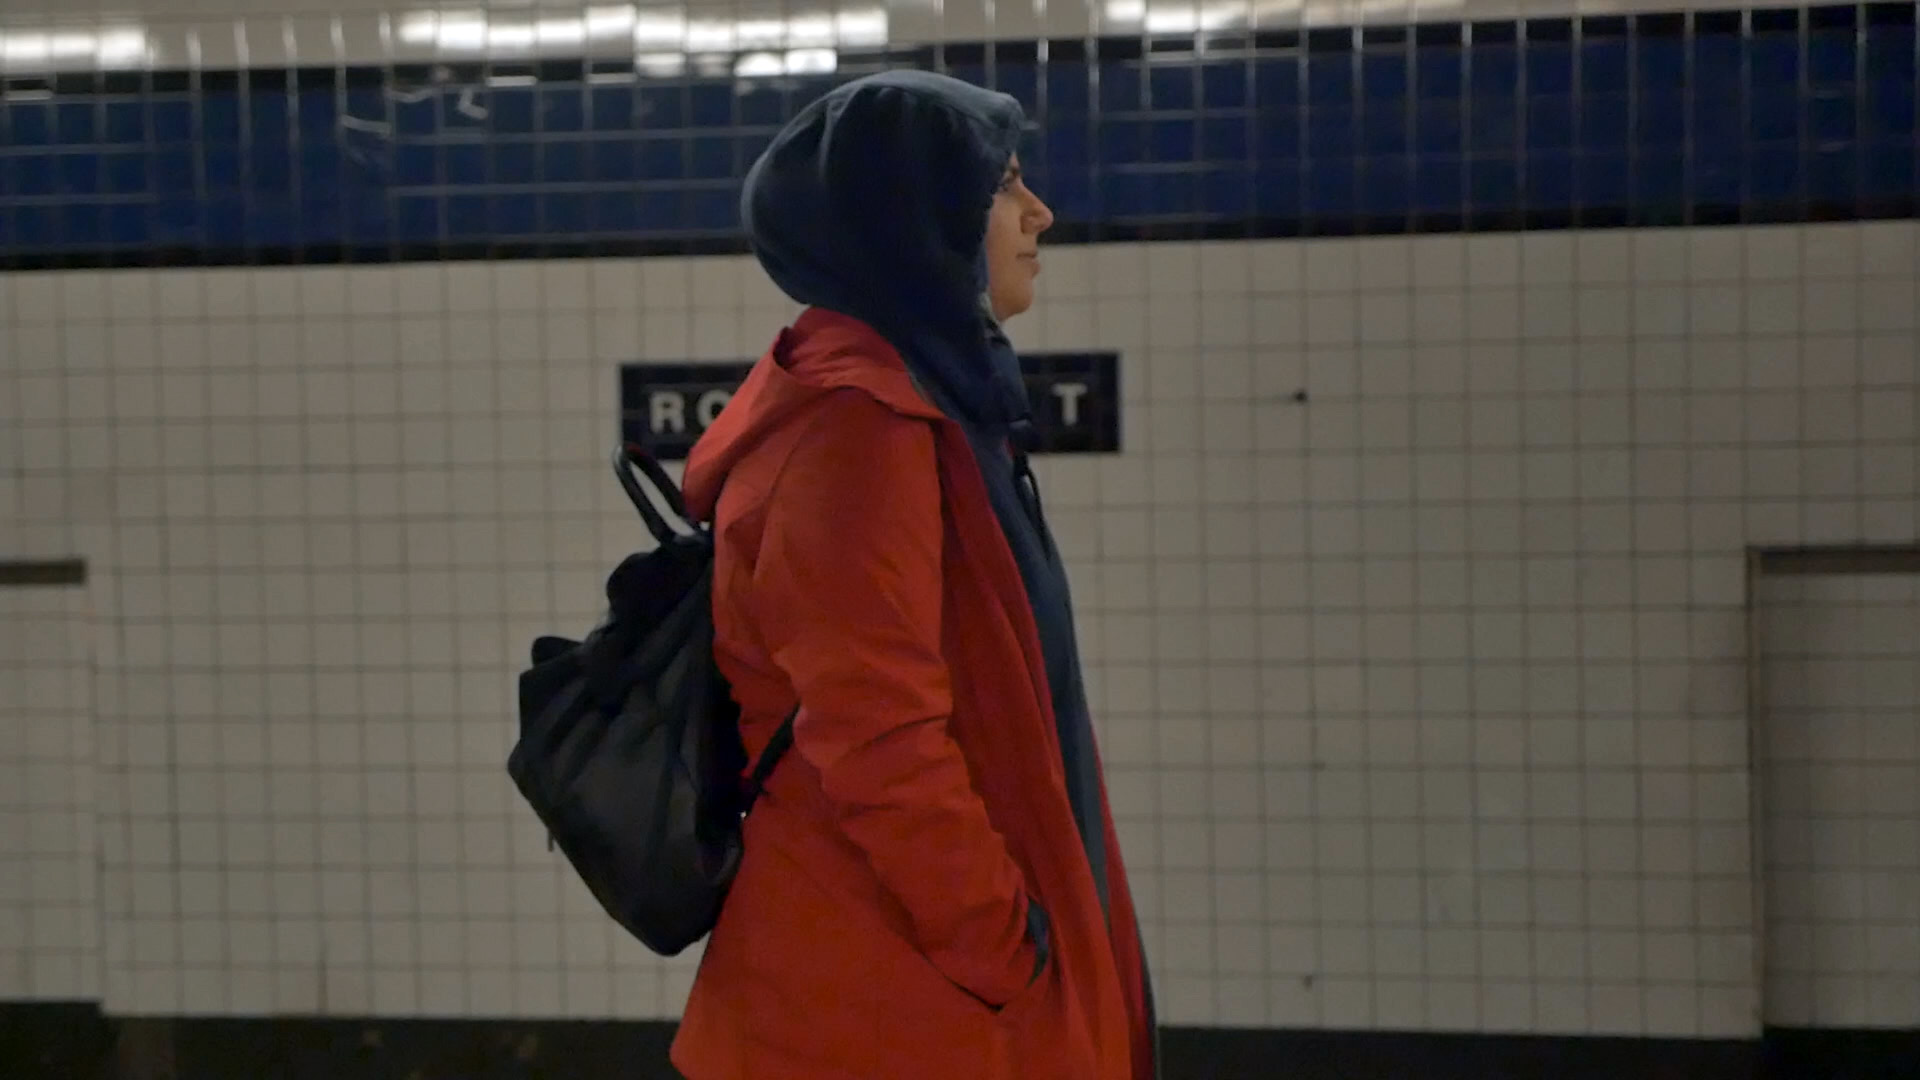 Badiaa, a radiology student,waits for the 5:14 a.m. train to her job at Dunkin Donuts.